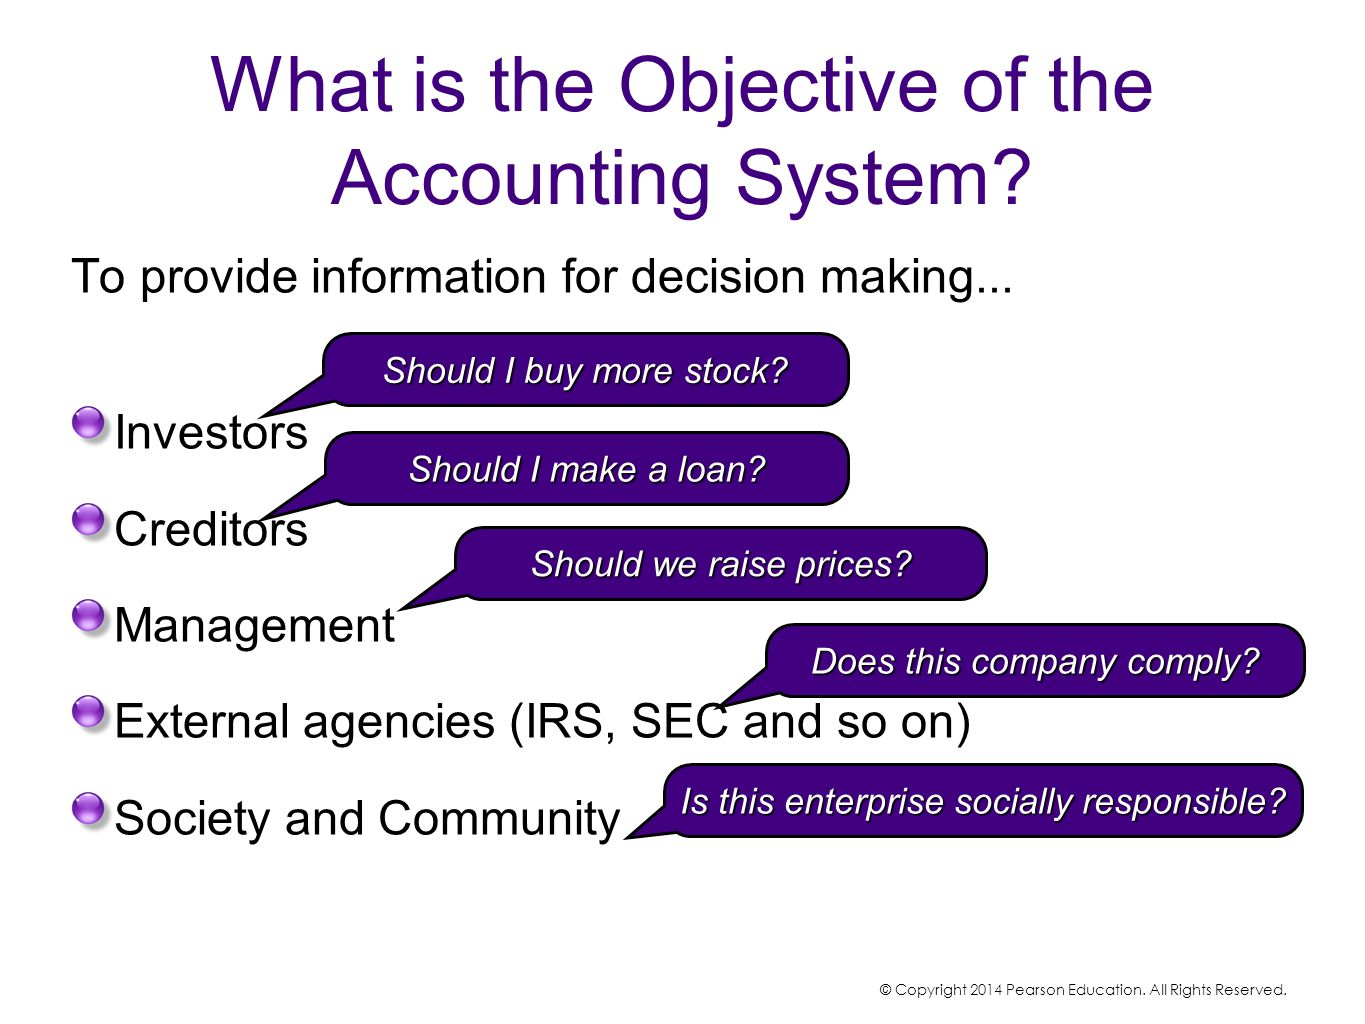 What is the Objective of the Accounting System